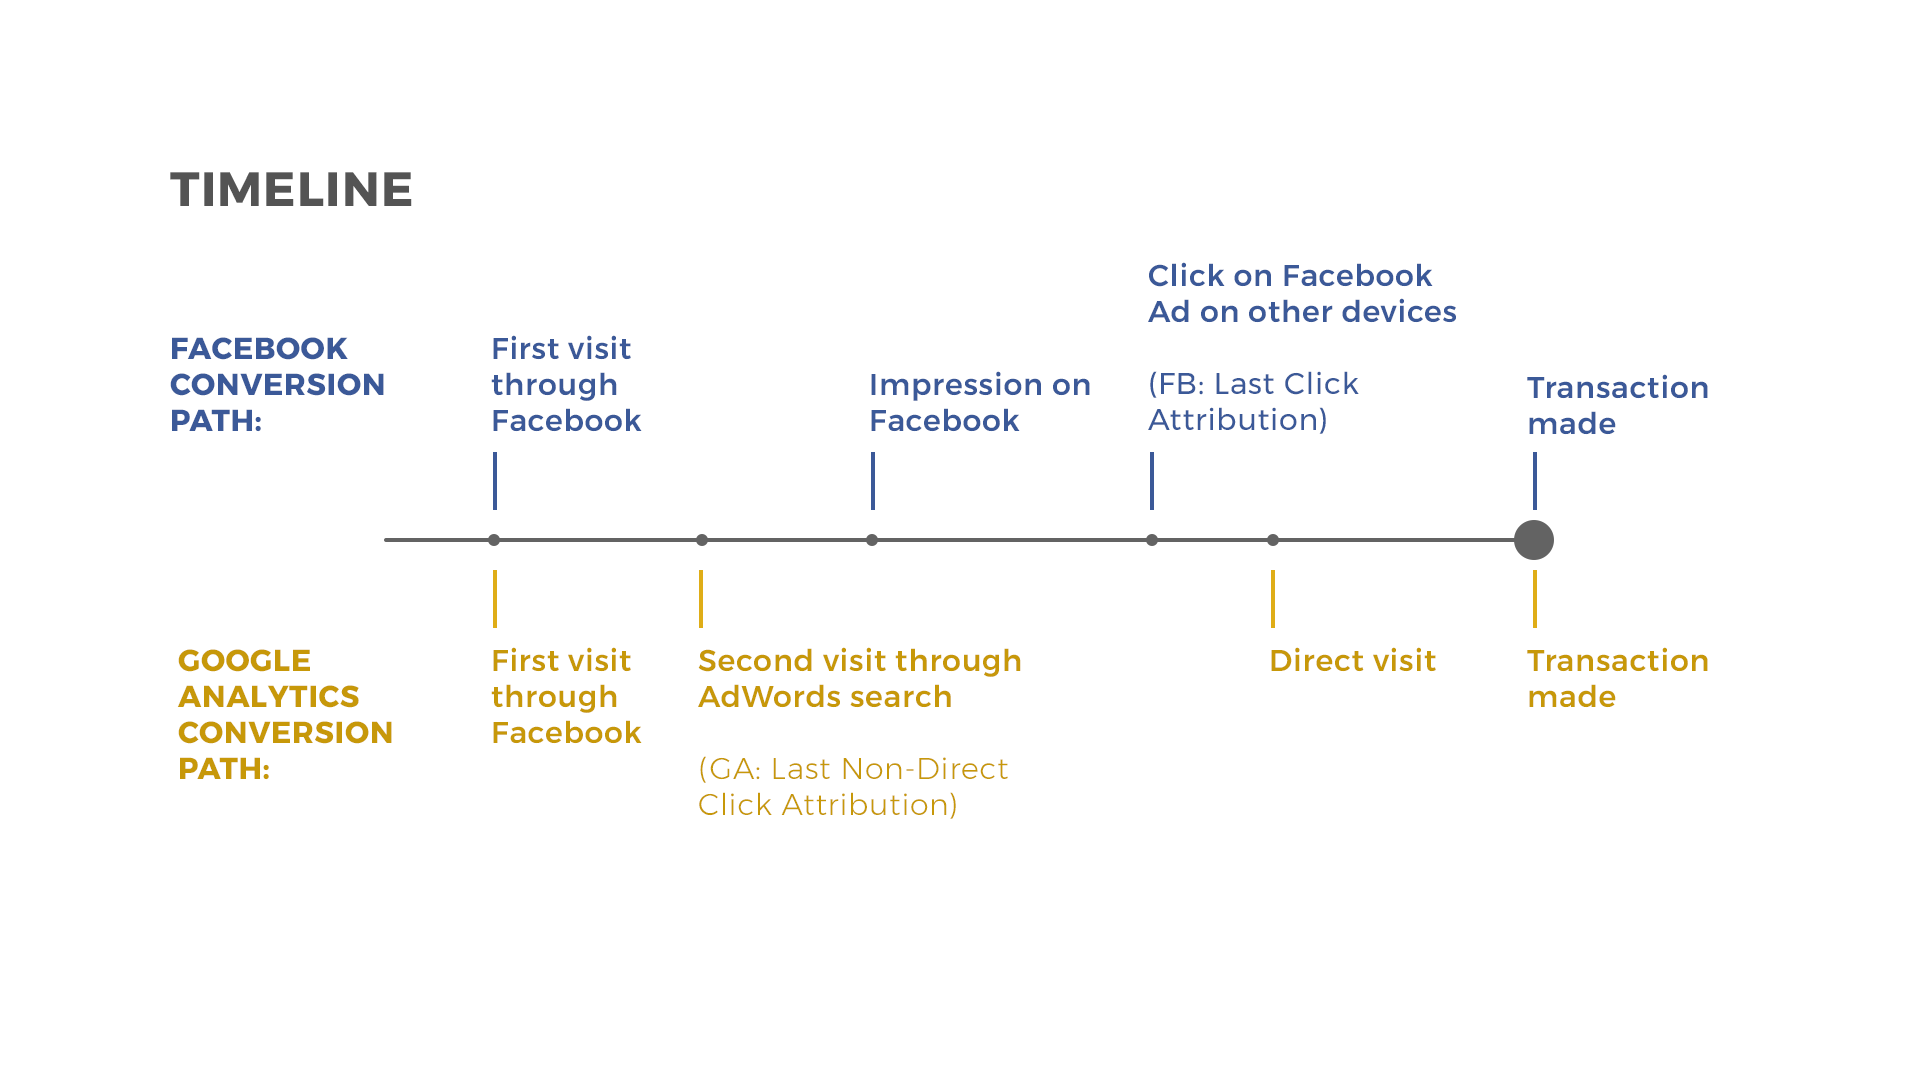 Google Analytics can Misattribute up to 21% of Facebook Clicks